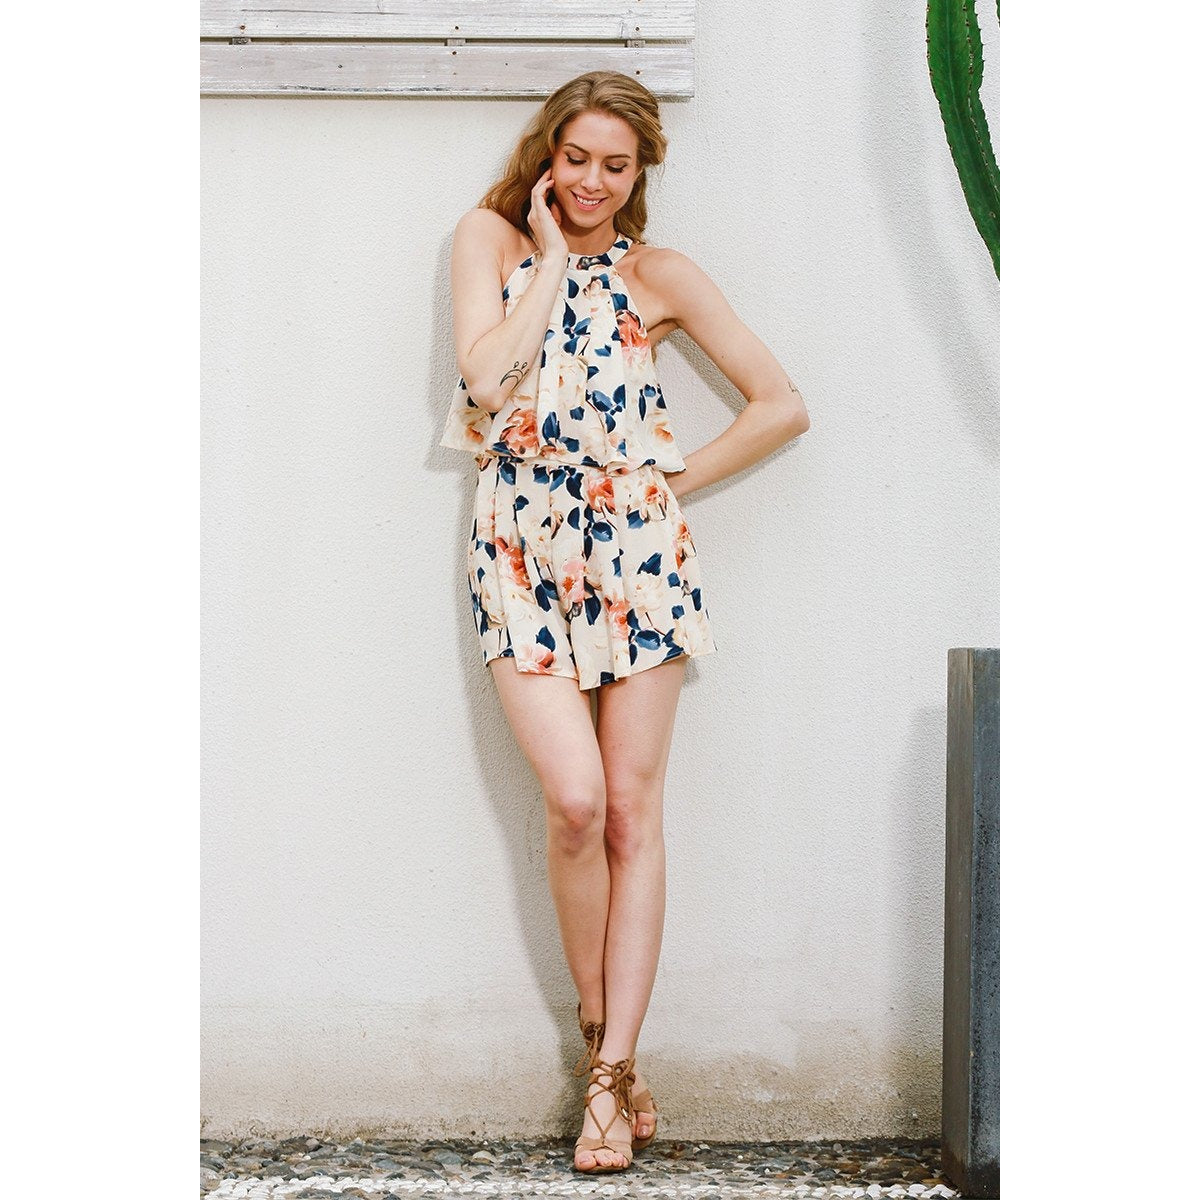 The Bonnie Halter Romper is a sweet playsuit that features a circle halter neckline, sleeveless shorts with a floral pattern and lightly pleated style.